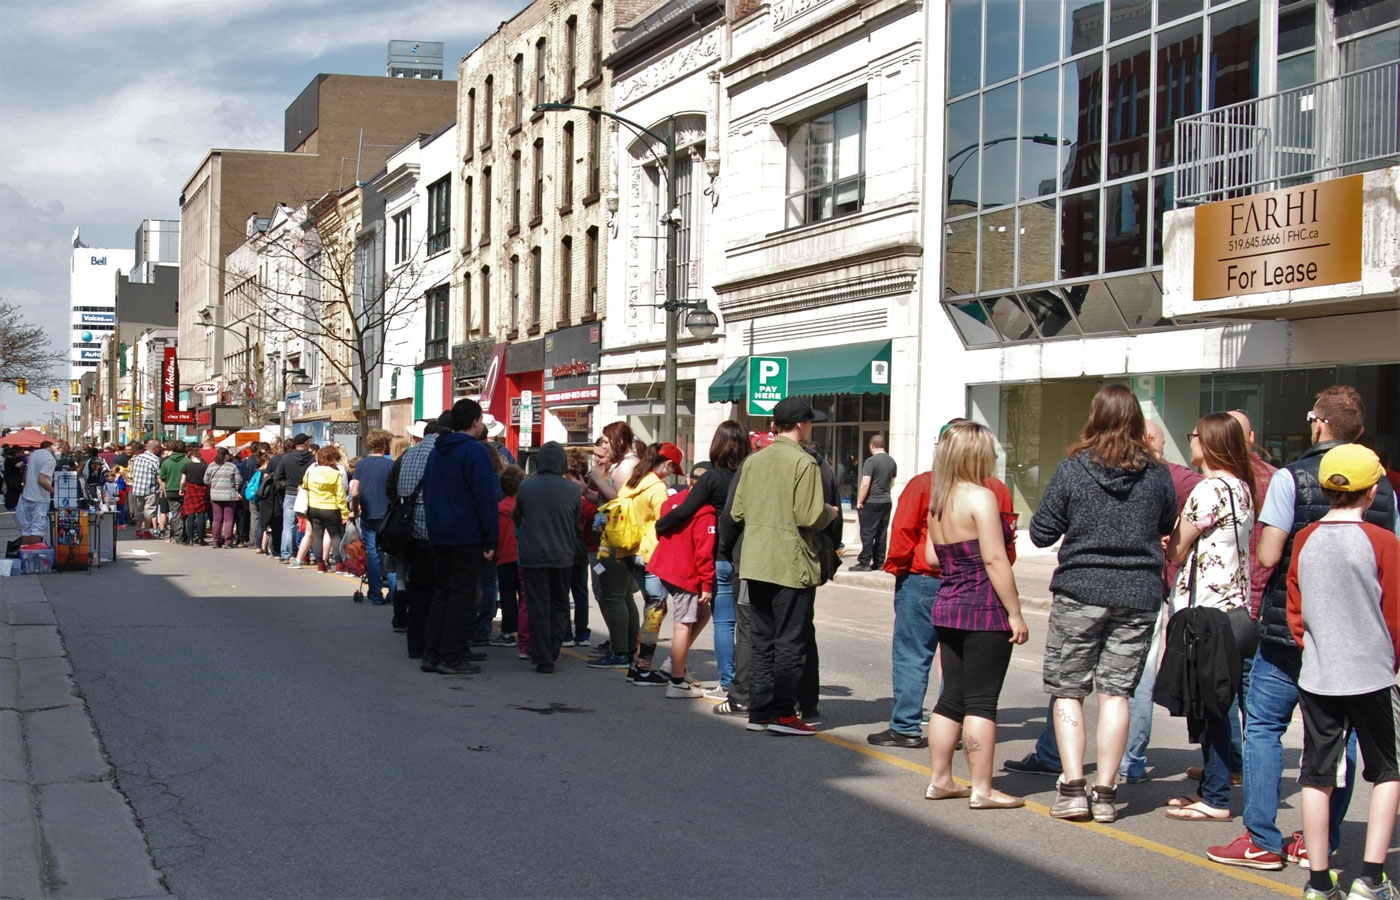 The lineup for Heroes Comics during Free Comic Book Day in London, ON.